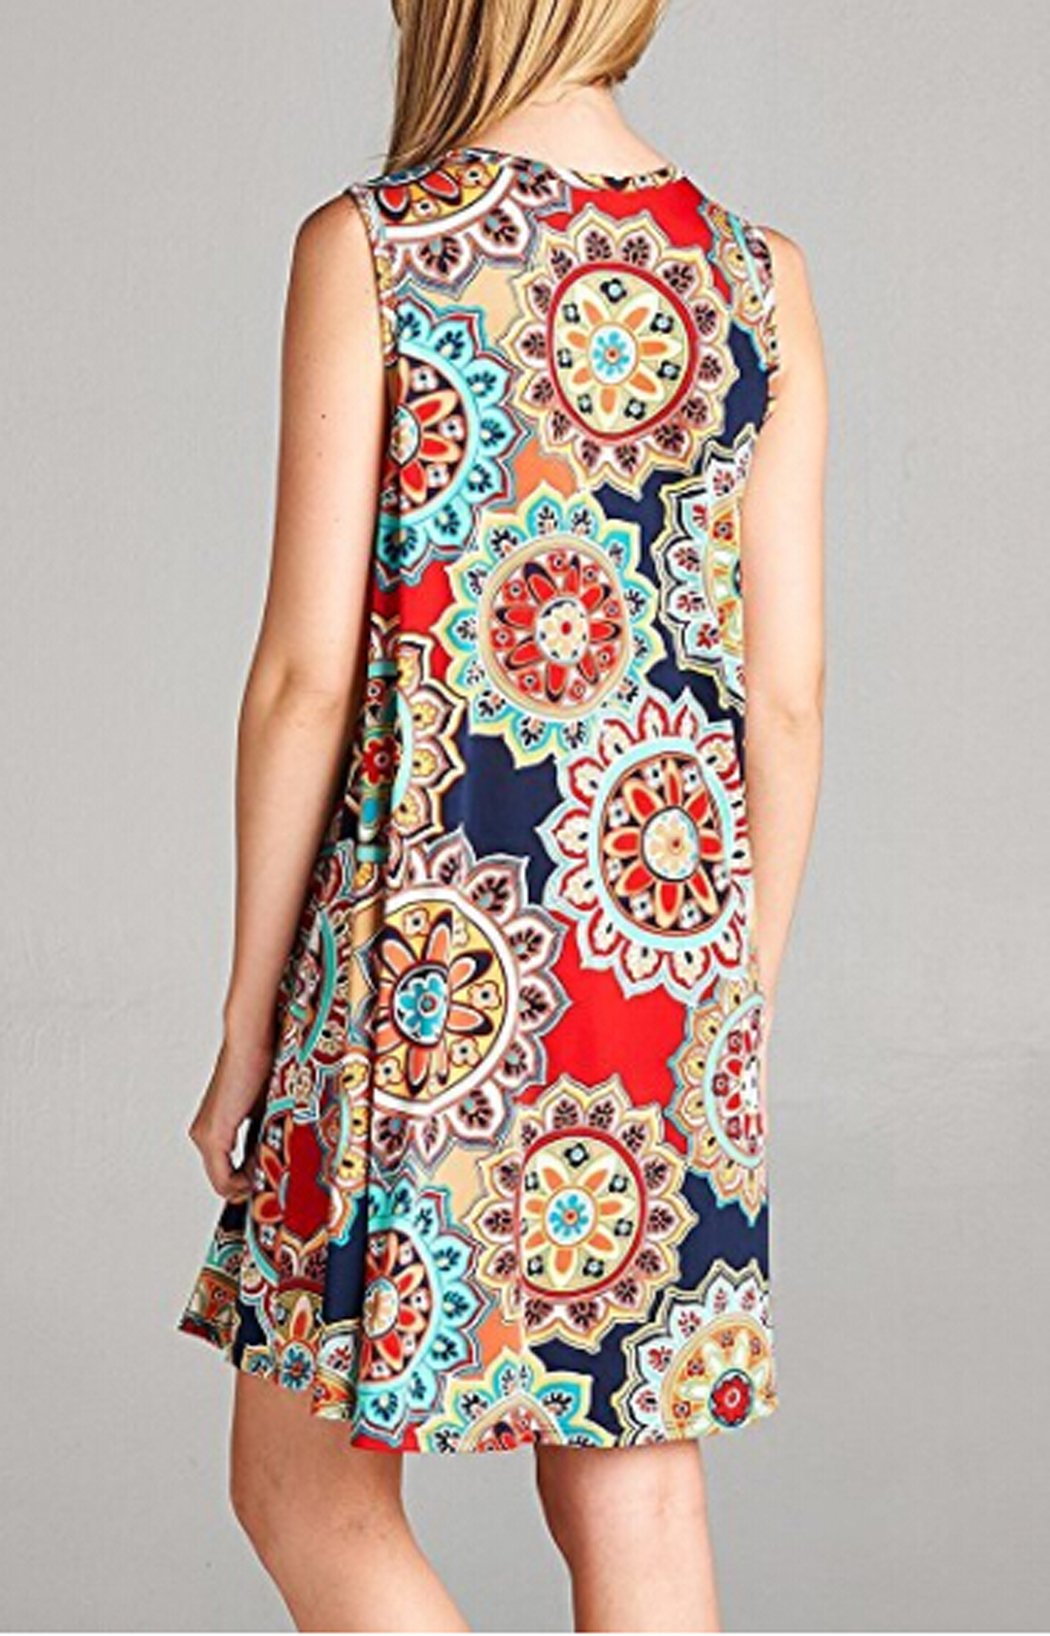 POGTMM Ladies Casual Ethnic Flower Print Beach Loose Tank Plus Size Short Dresses(Navy Blue,XXL) by POGTMM (Image #5)